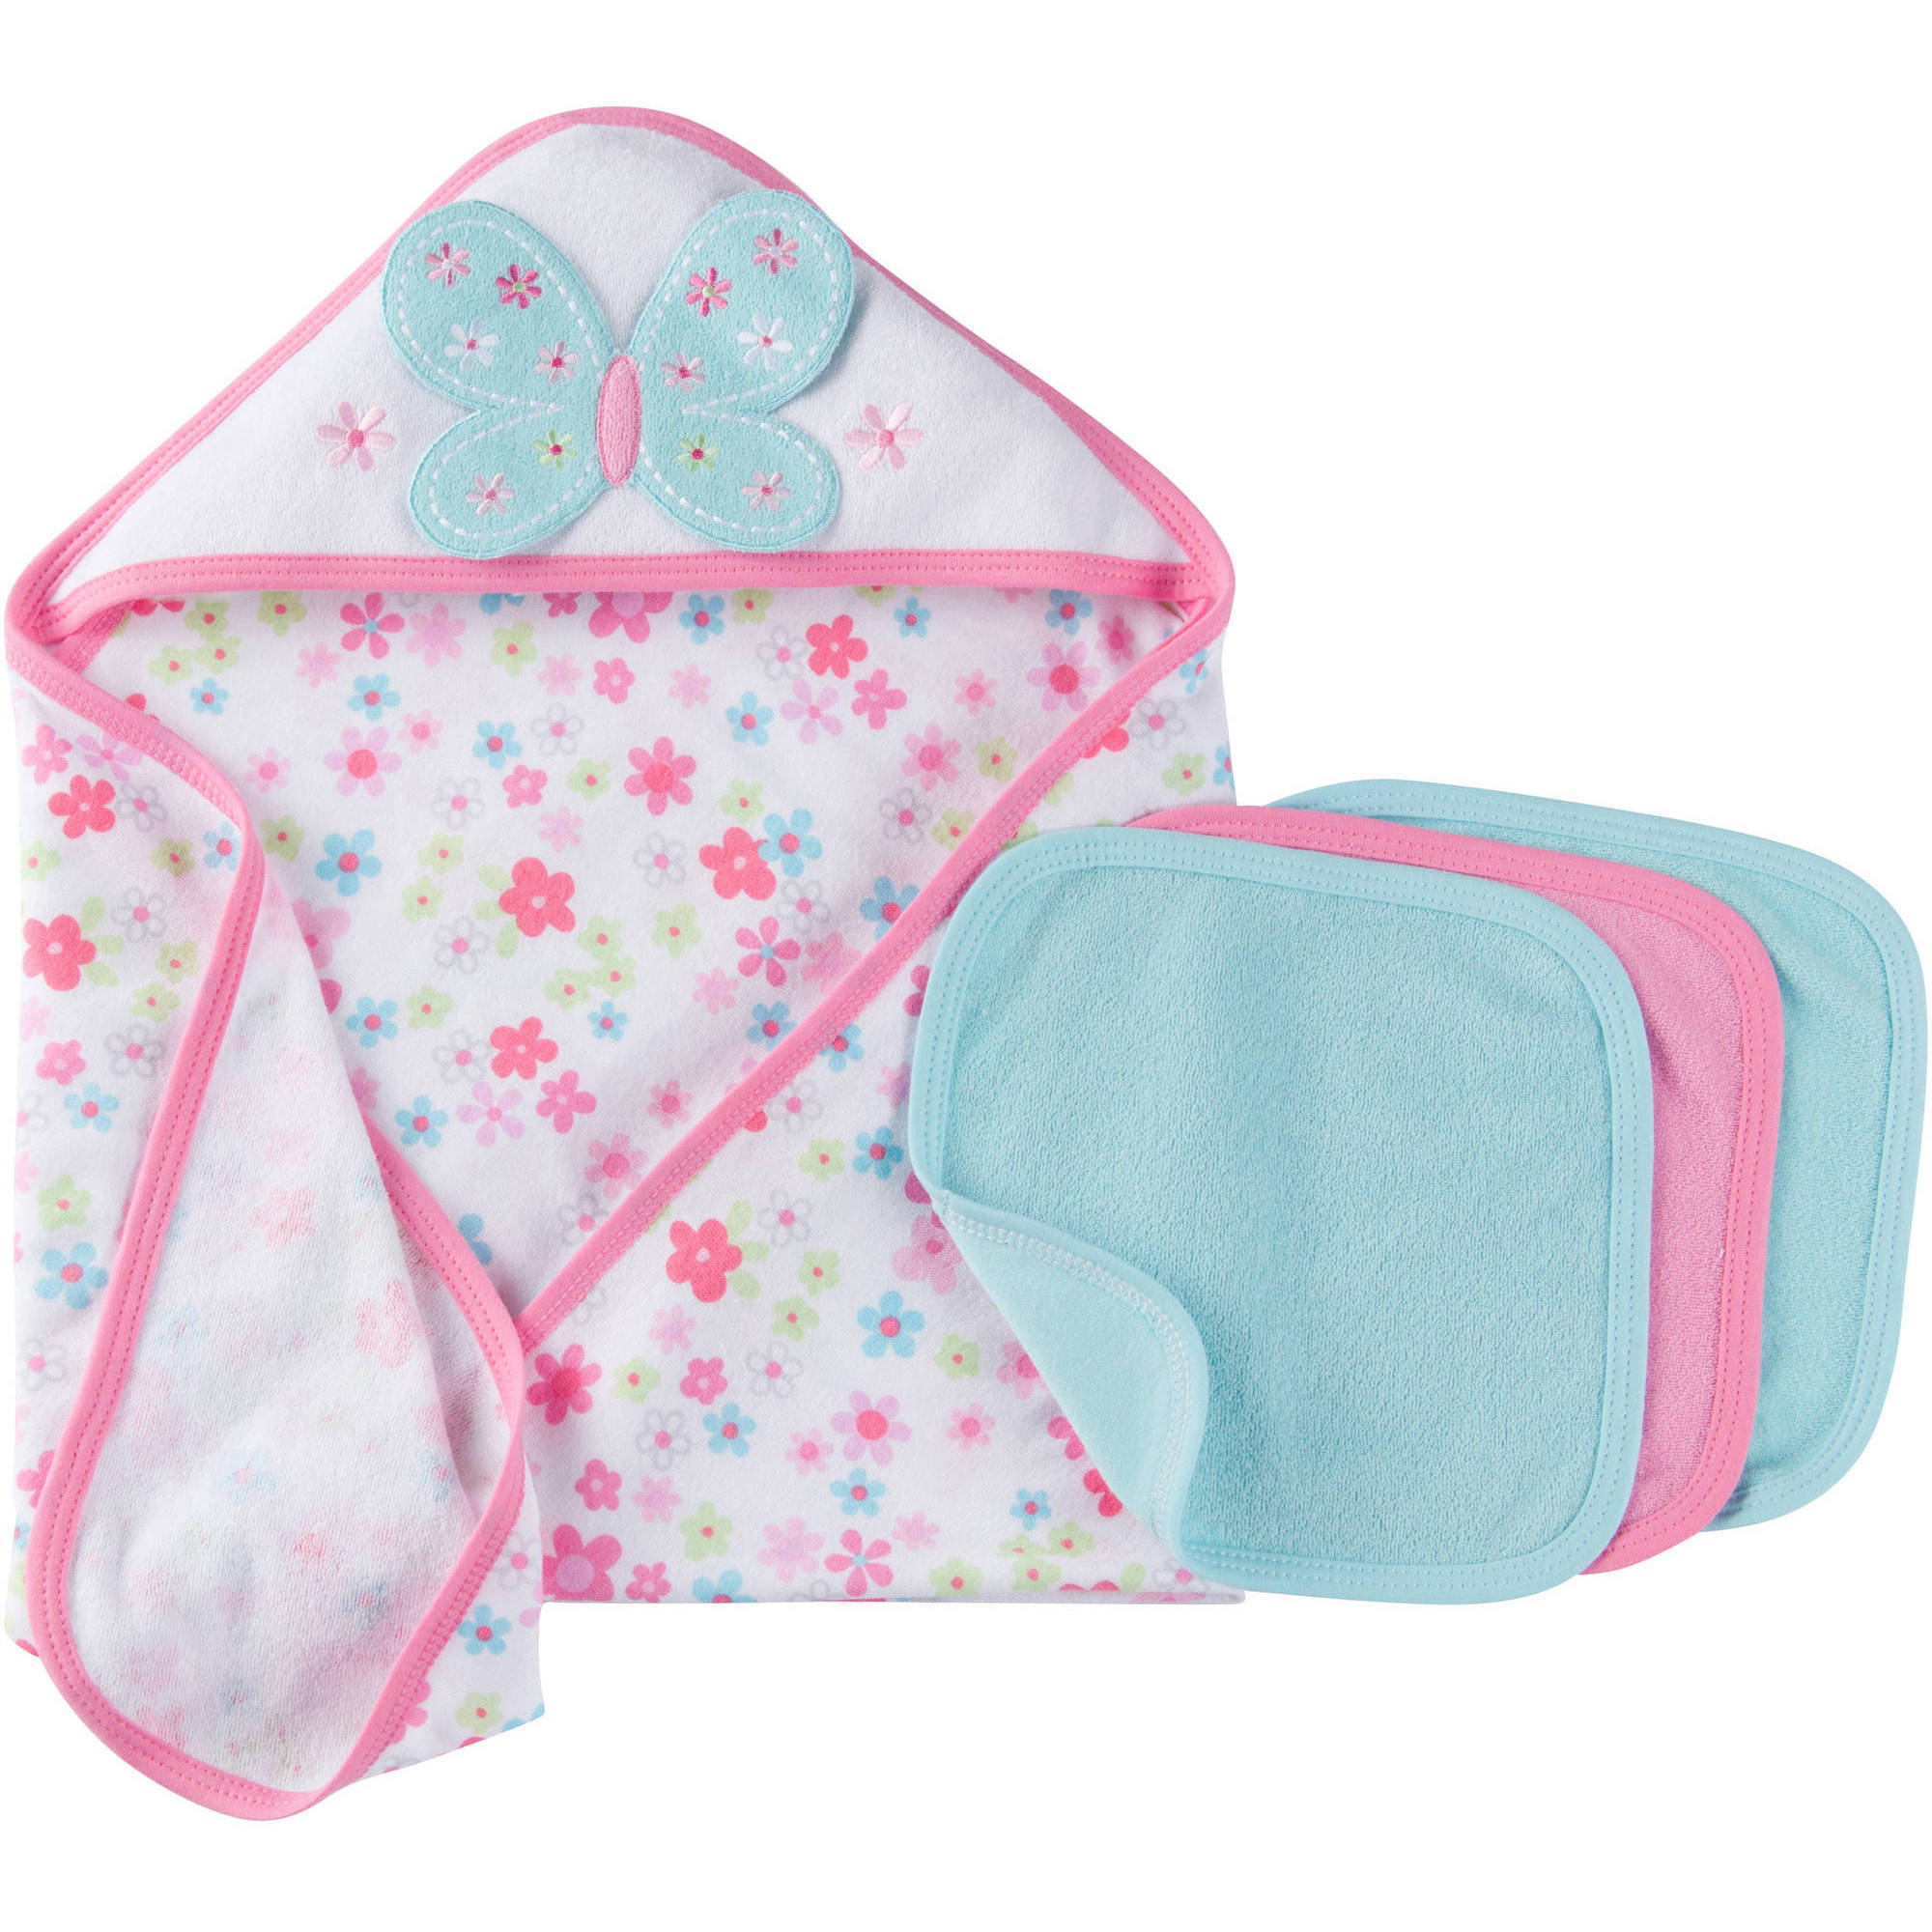 Gerber Newborn Baby Girl Towel and Washcloths Bath Essentials 4-Piece Gift Set